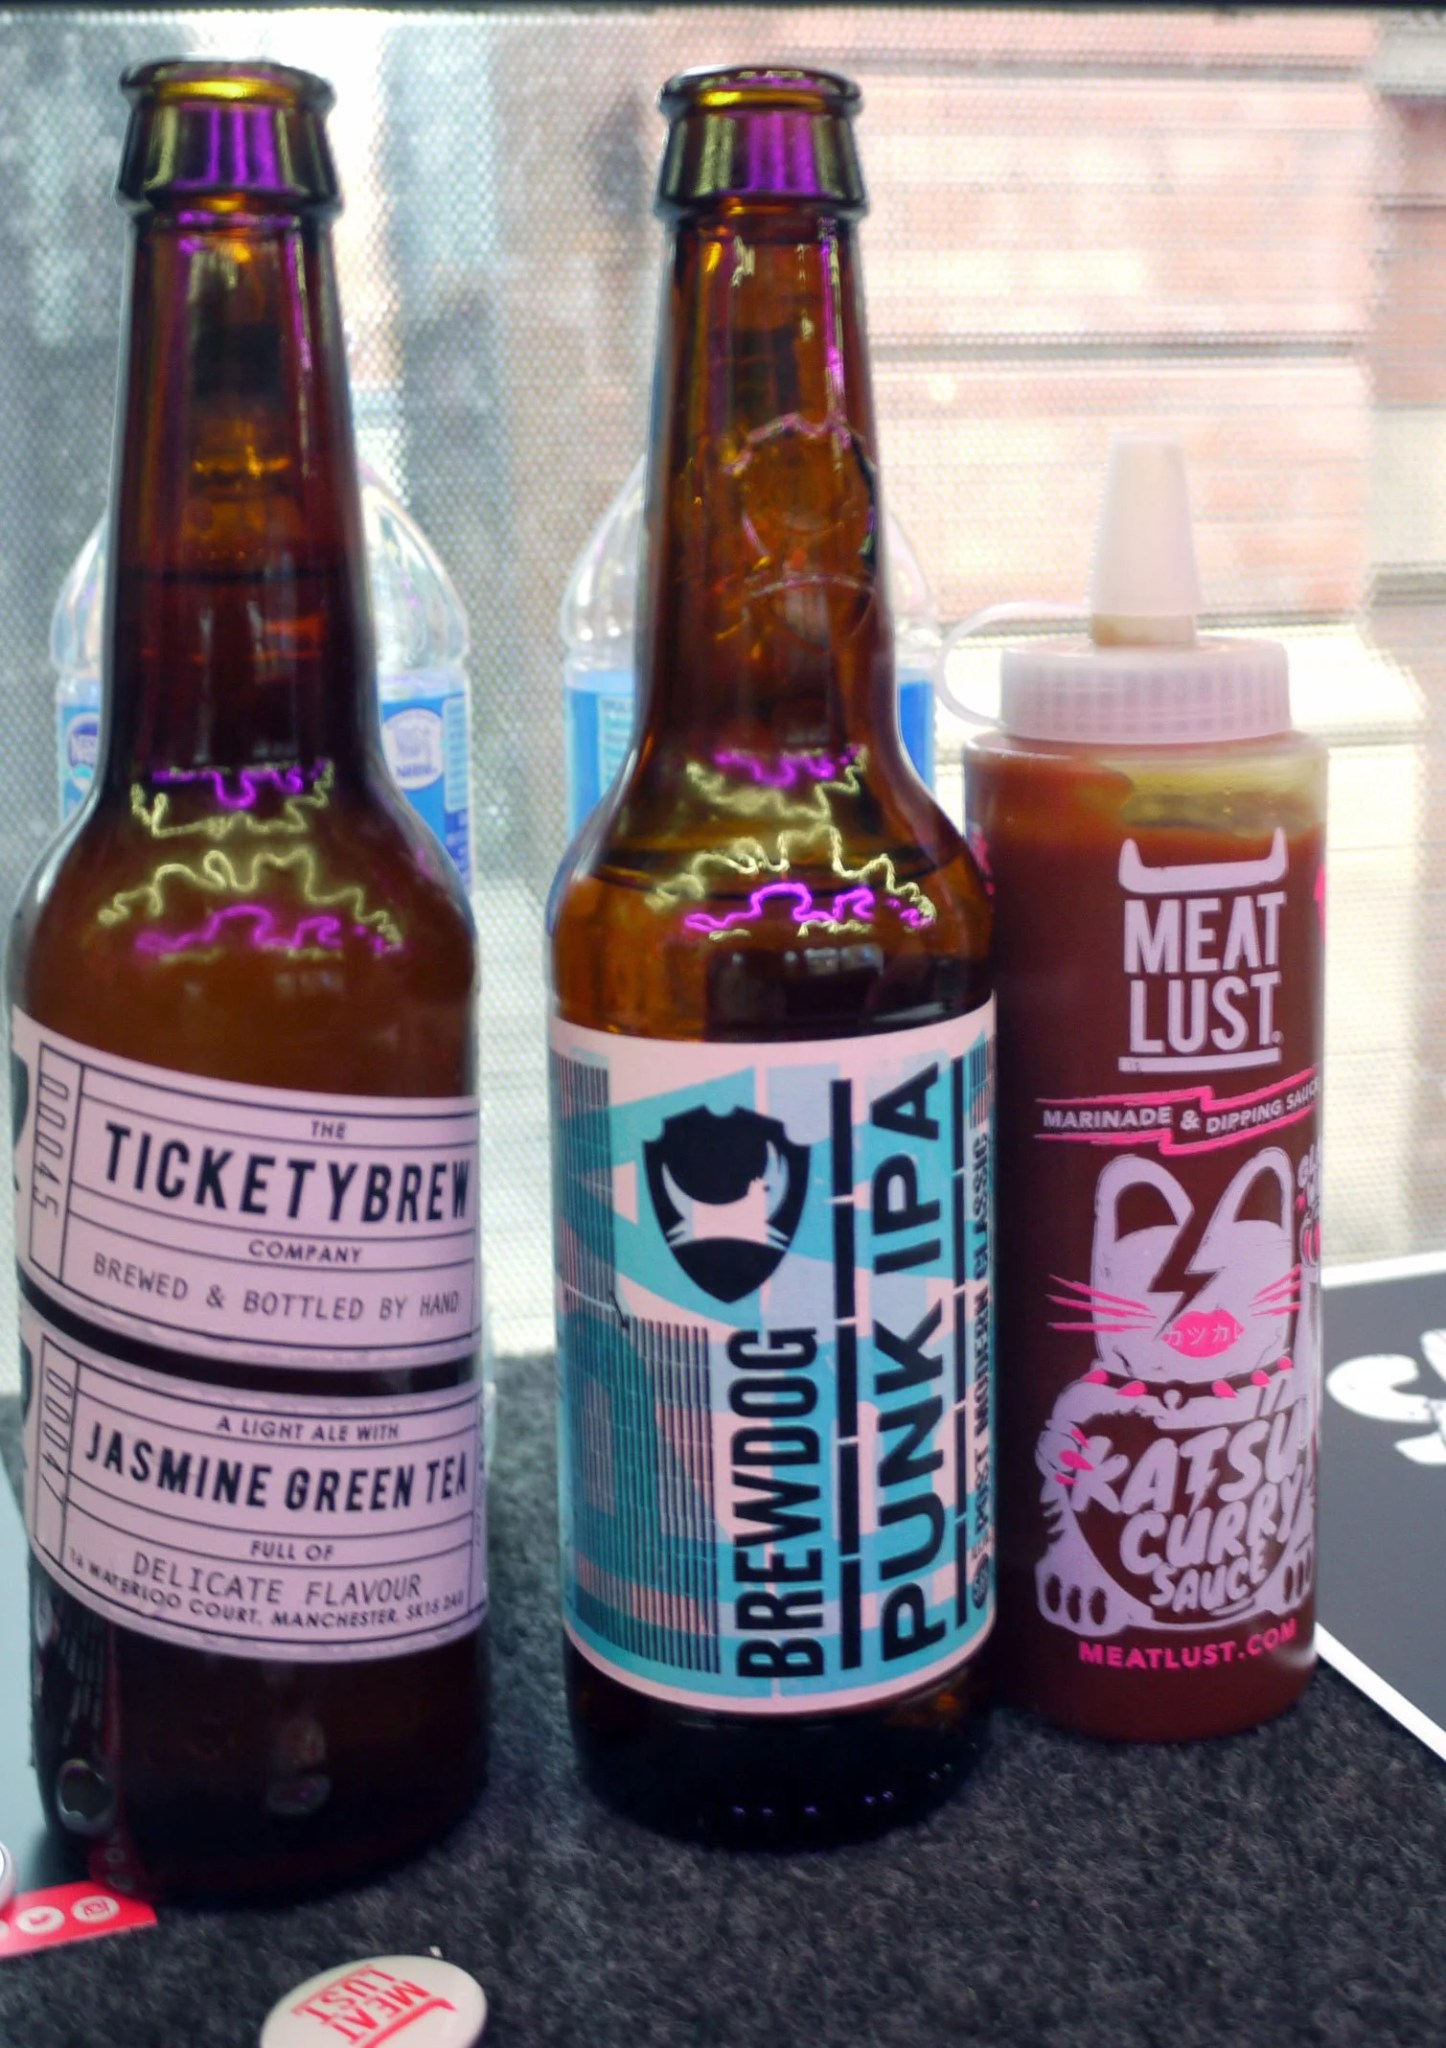 Tickety Brew Jasmine Green Tea and Brewdog IPA